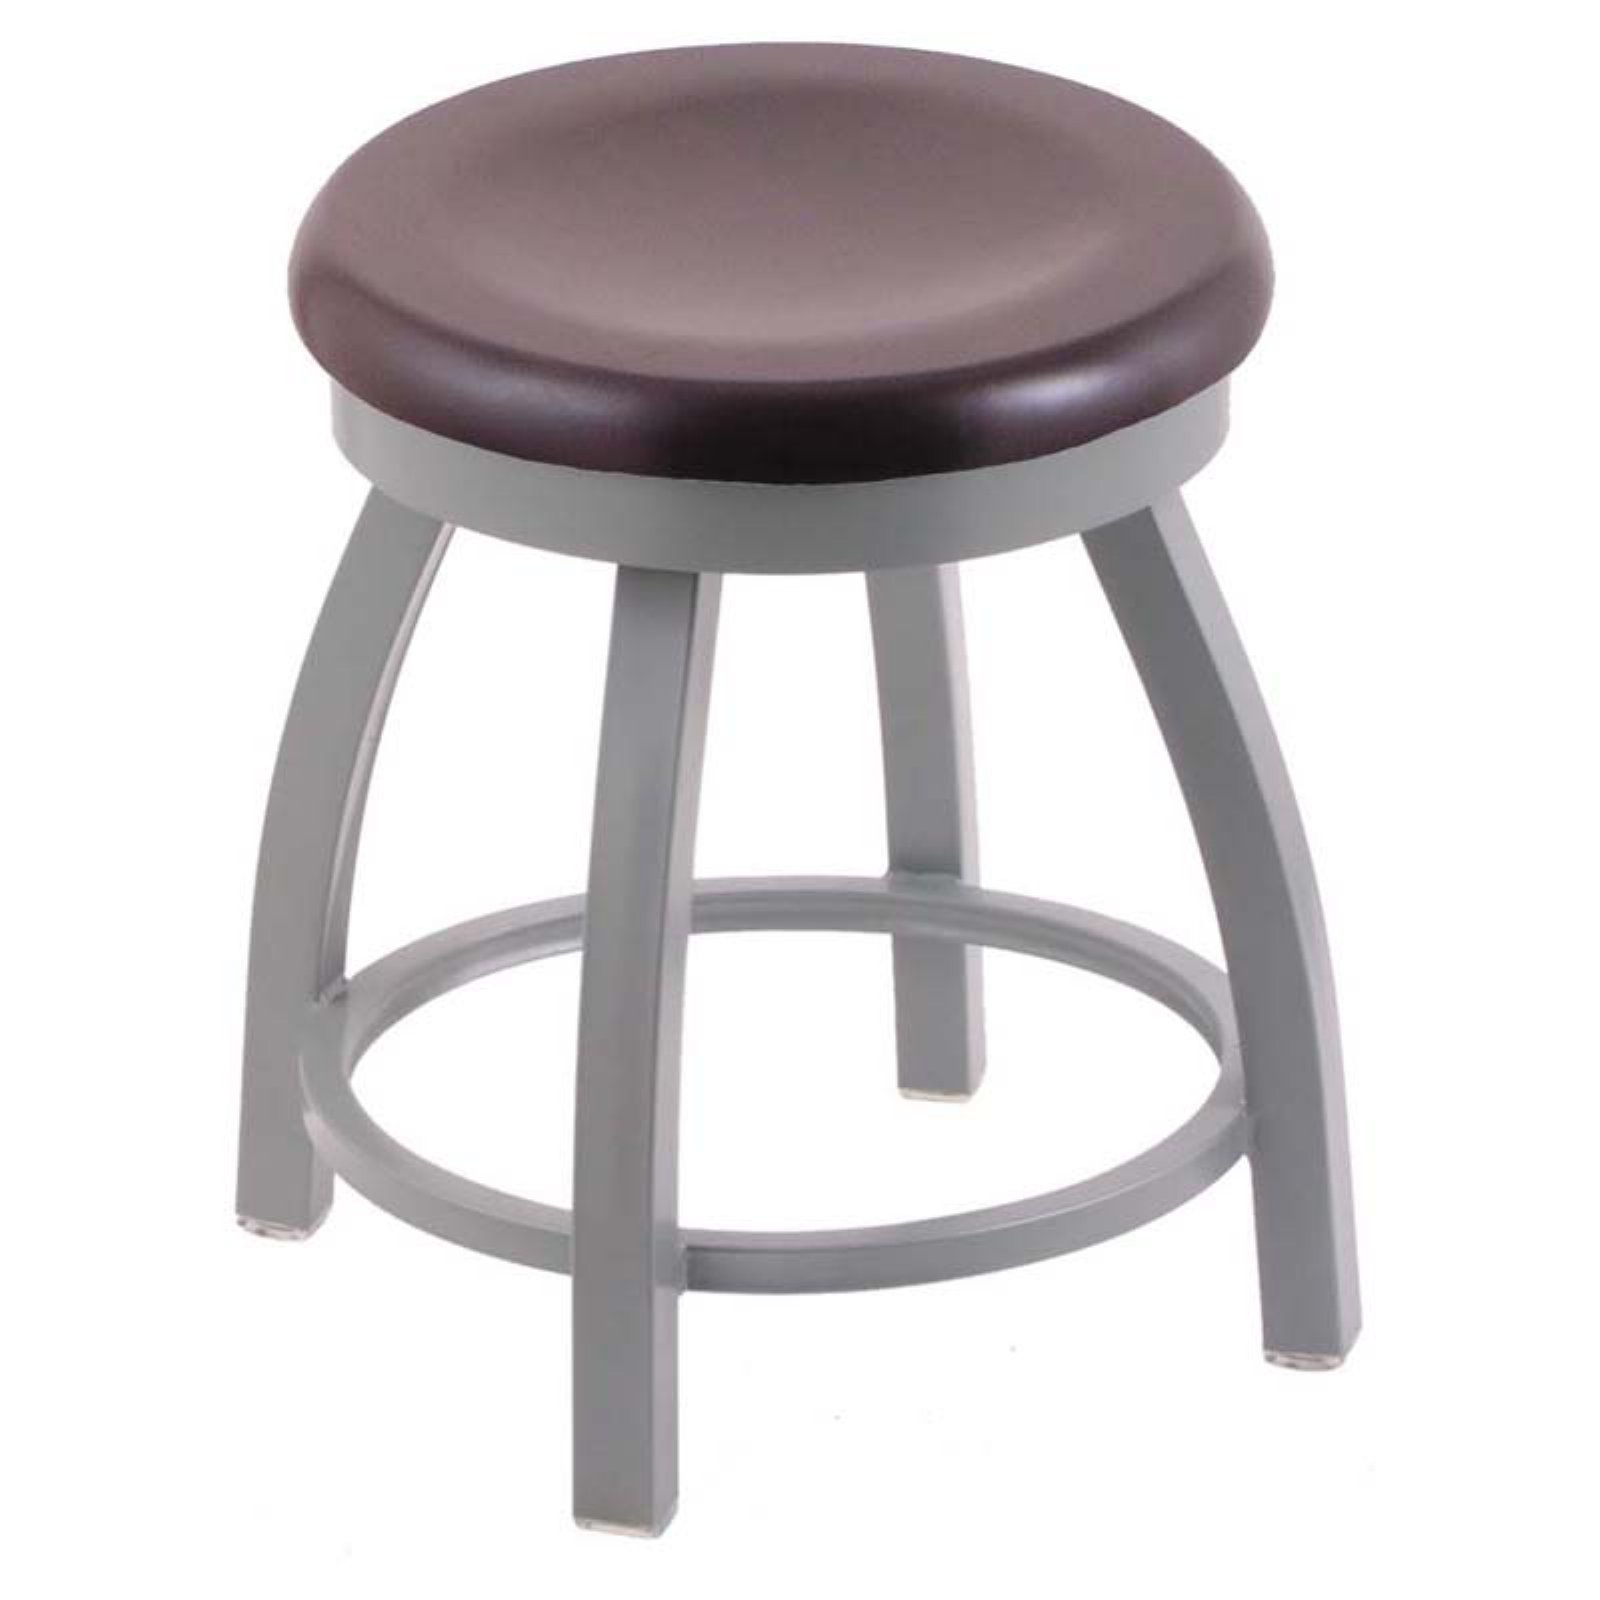 Holland Bar Stool Misha Swivel Dining Stool with Wood Seat